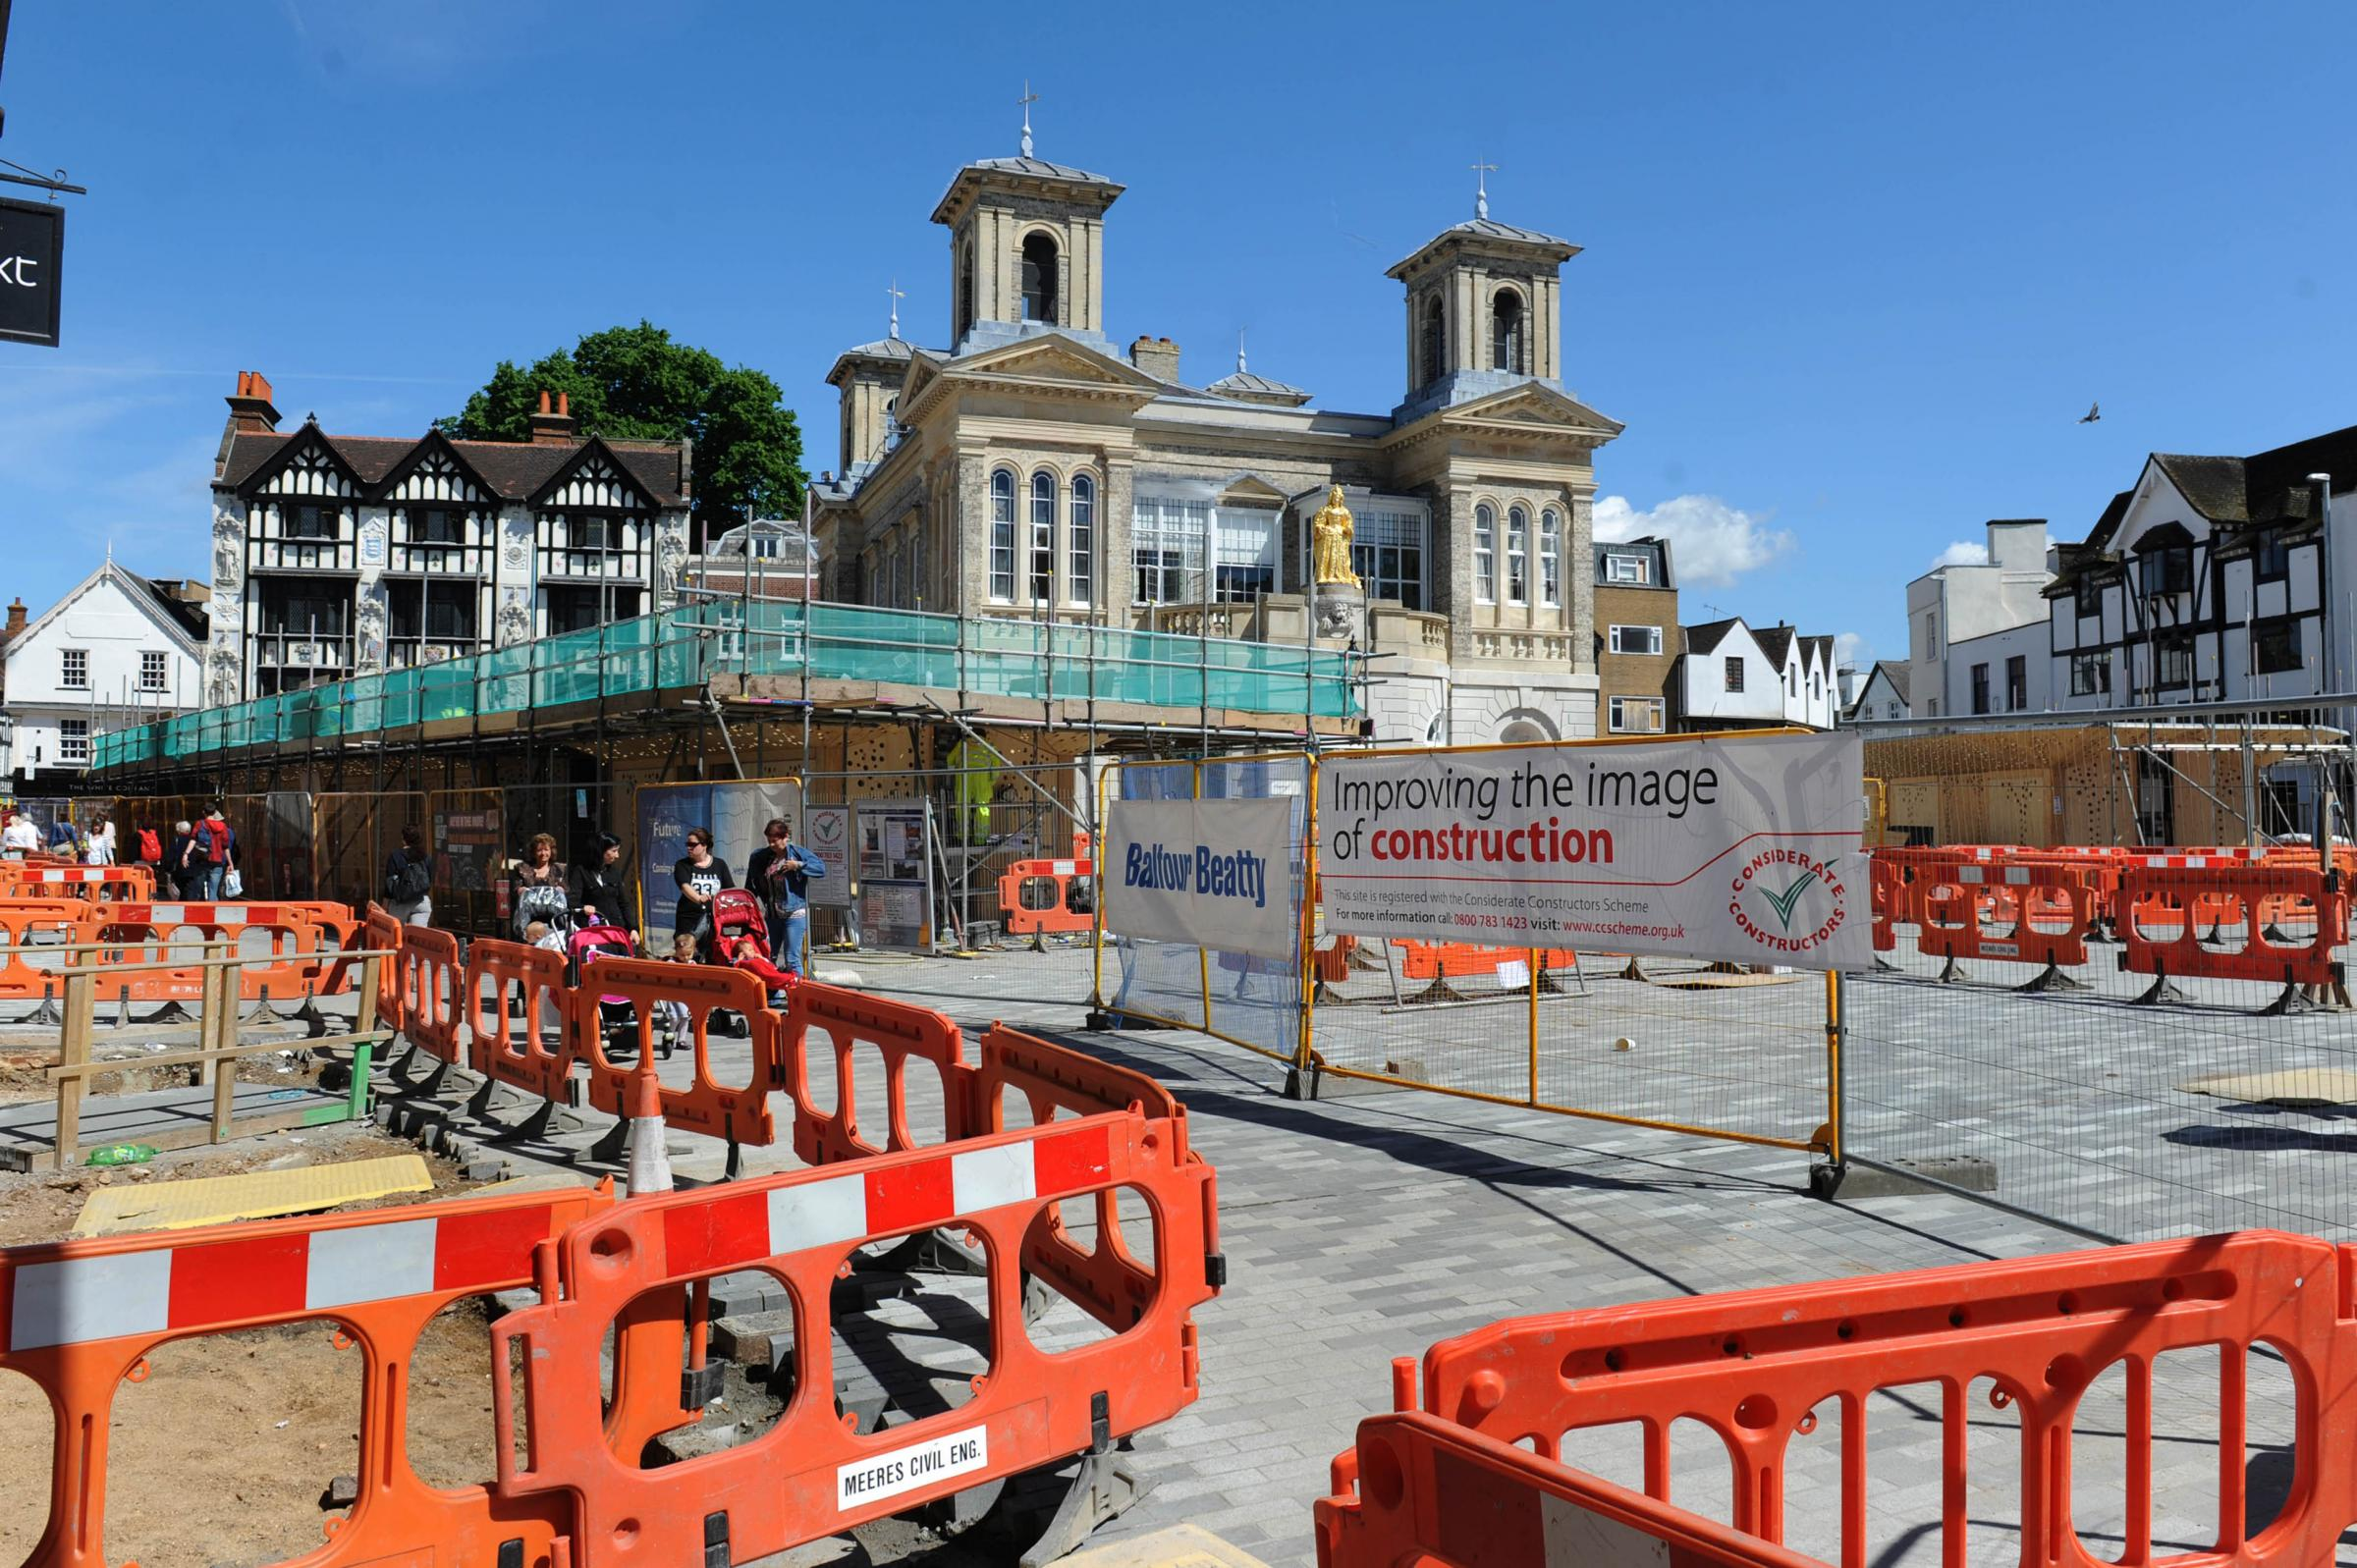 Kingston's ancient market place will partly re-open on Monday